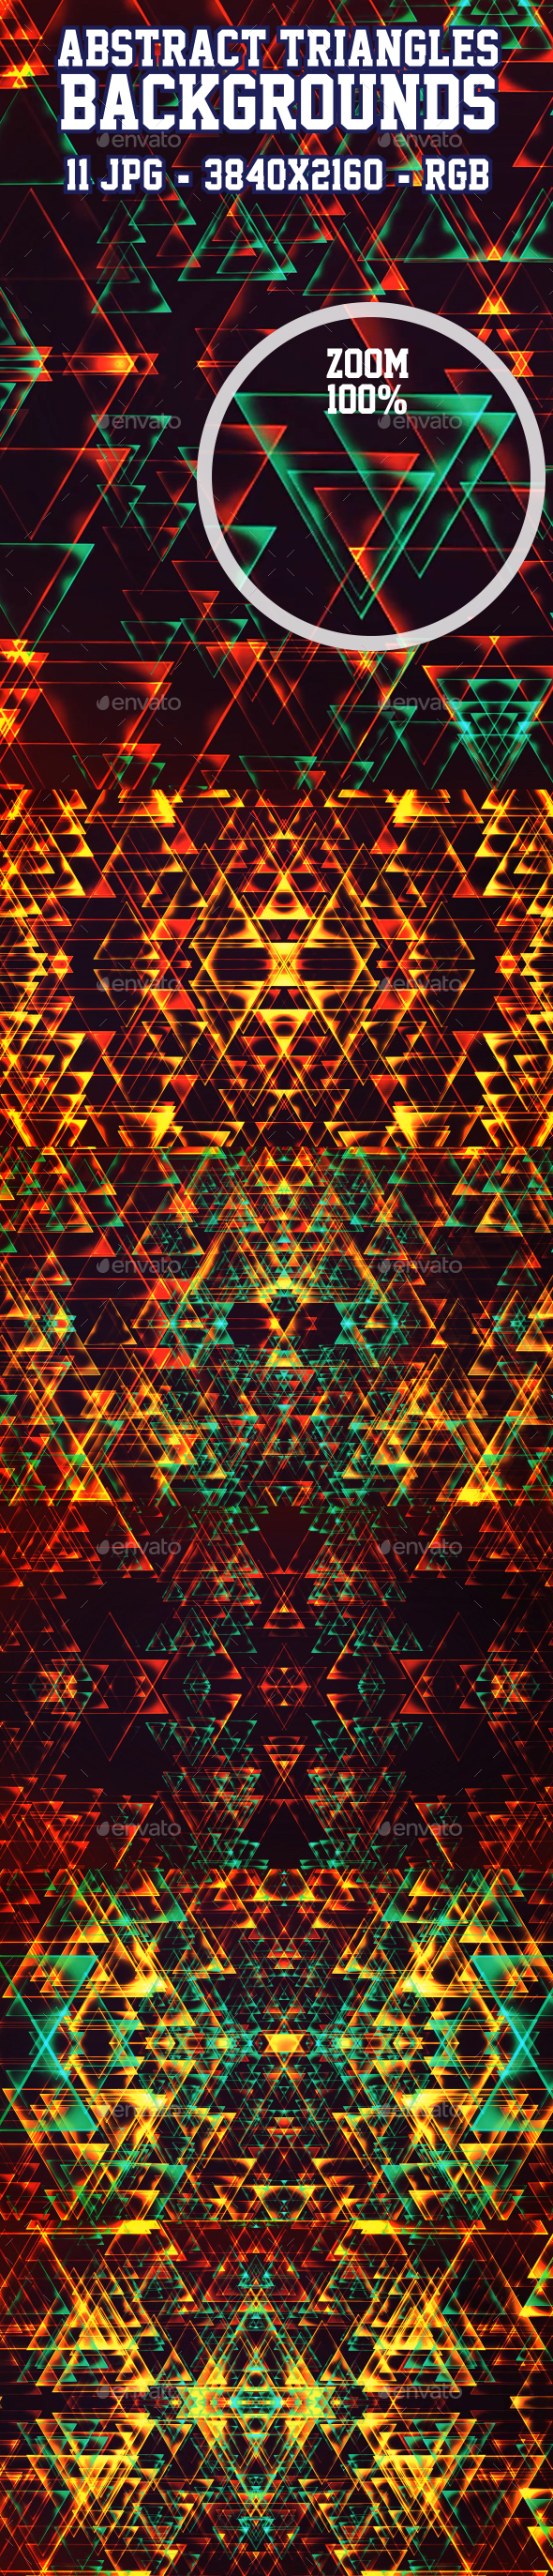 GraphicRiver Abstract Triangles Backgrounds 11 in 1 20407108